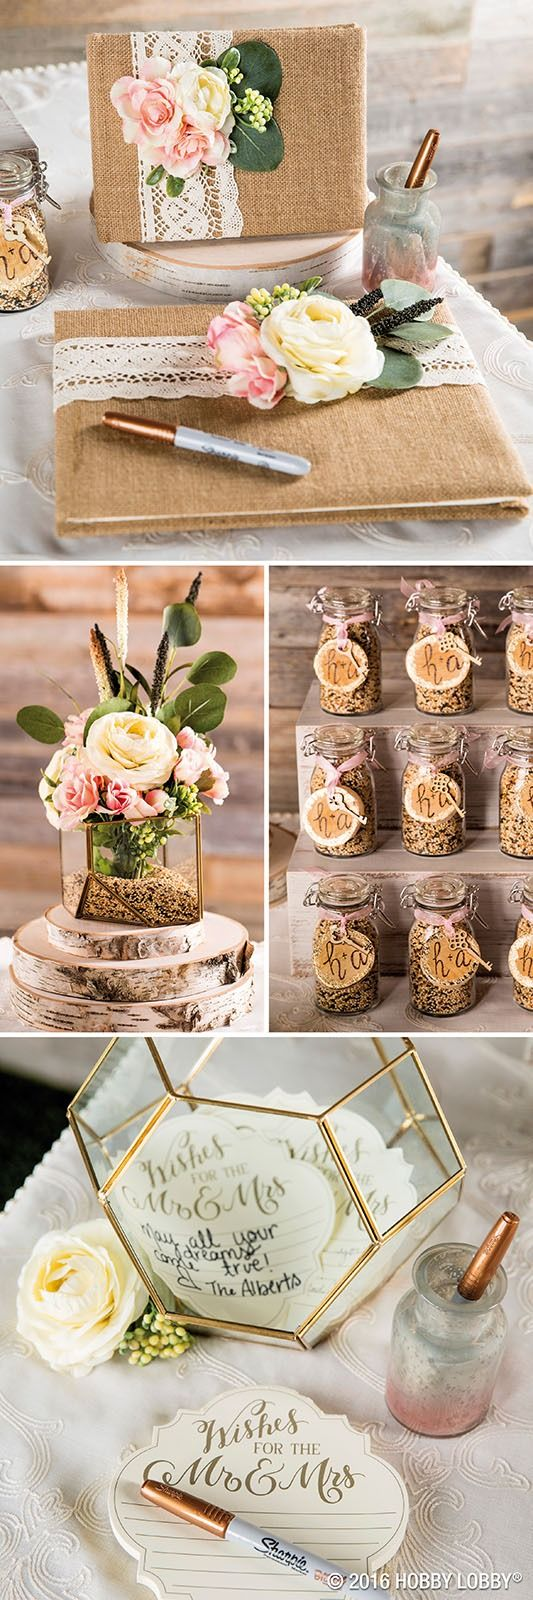 556 best diy wedding ideas images on pinterest diy your way to a fabulous big day with made by you wedding accessories junglespirit Choice Image